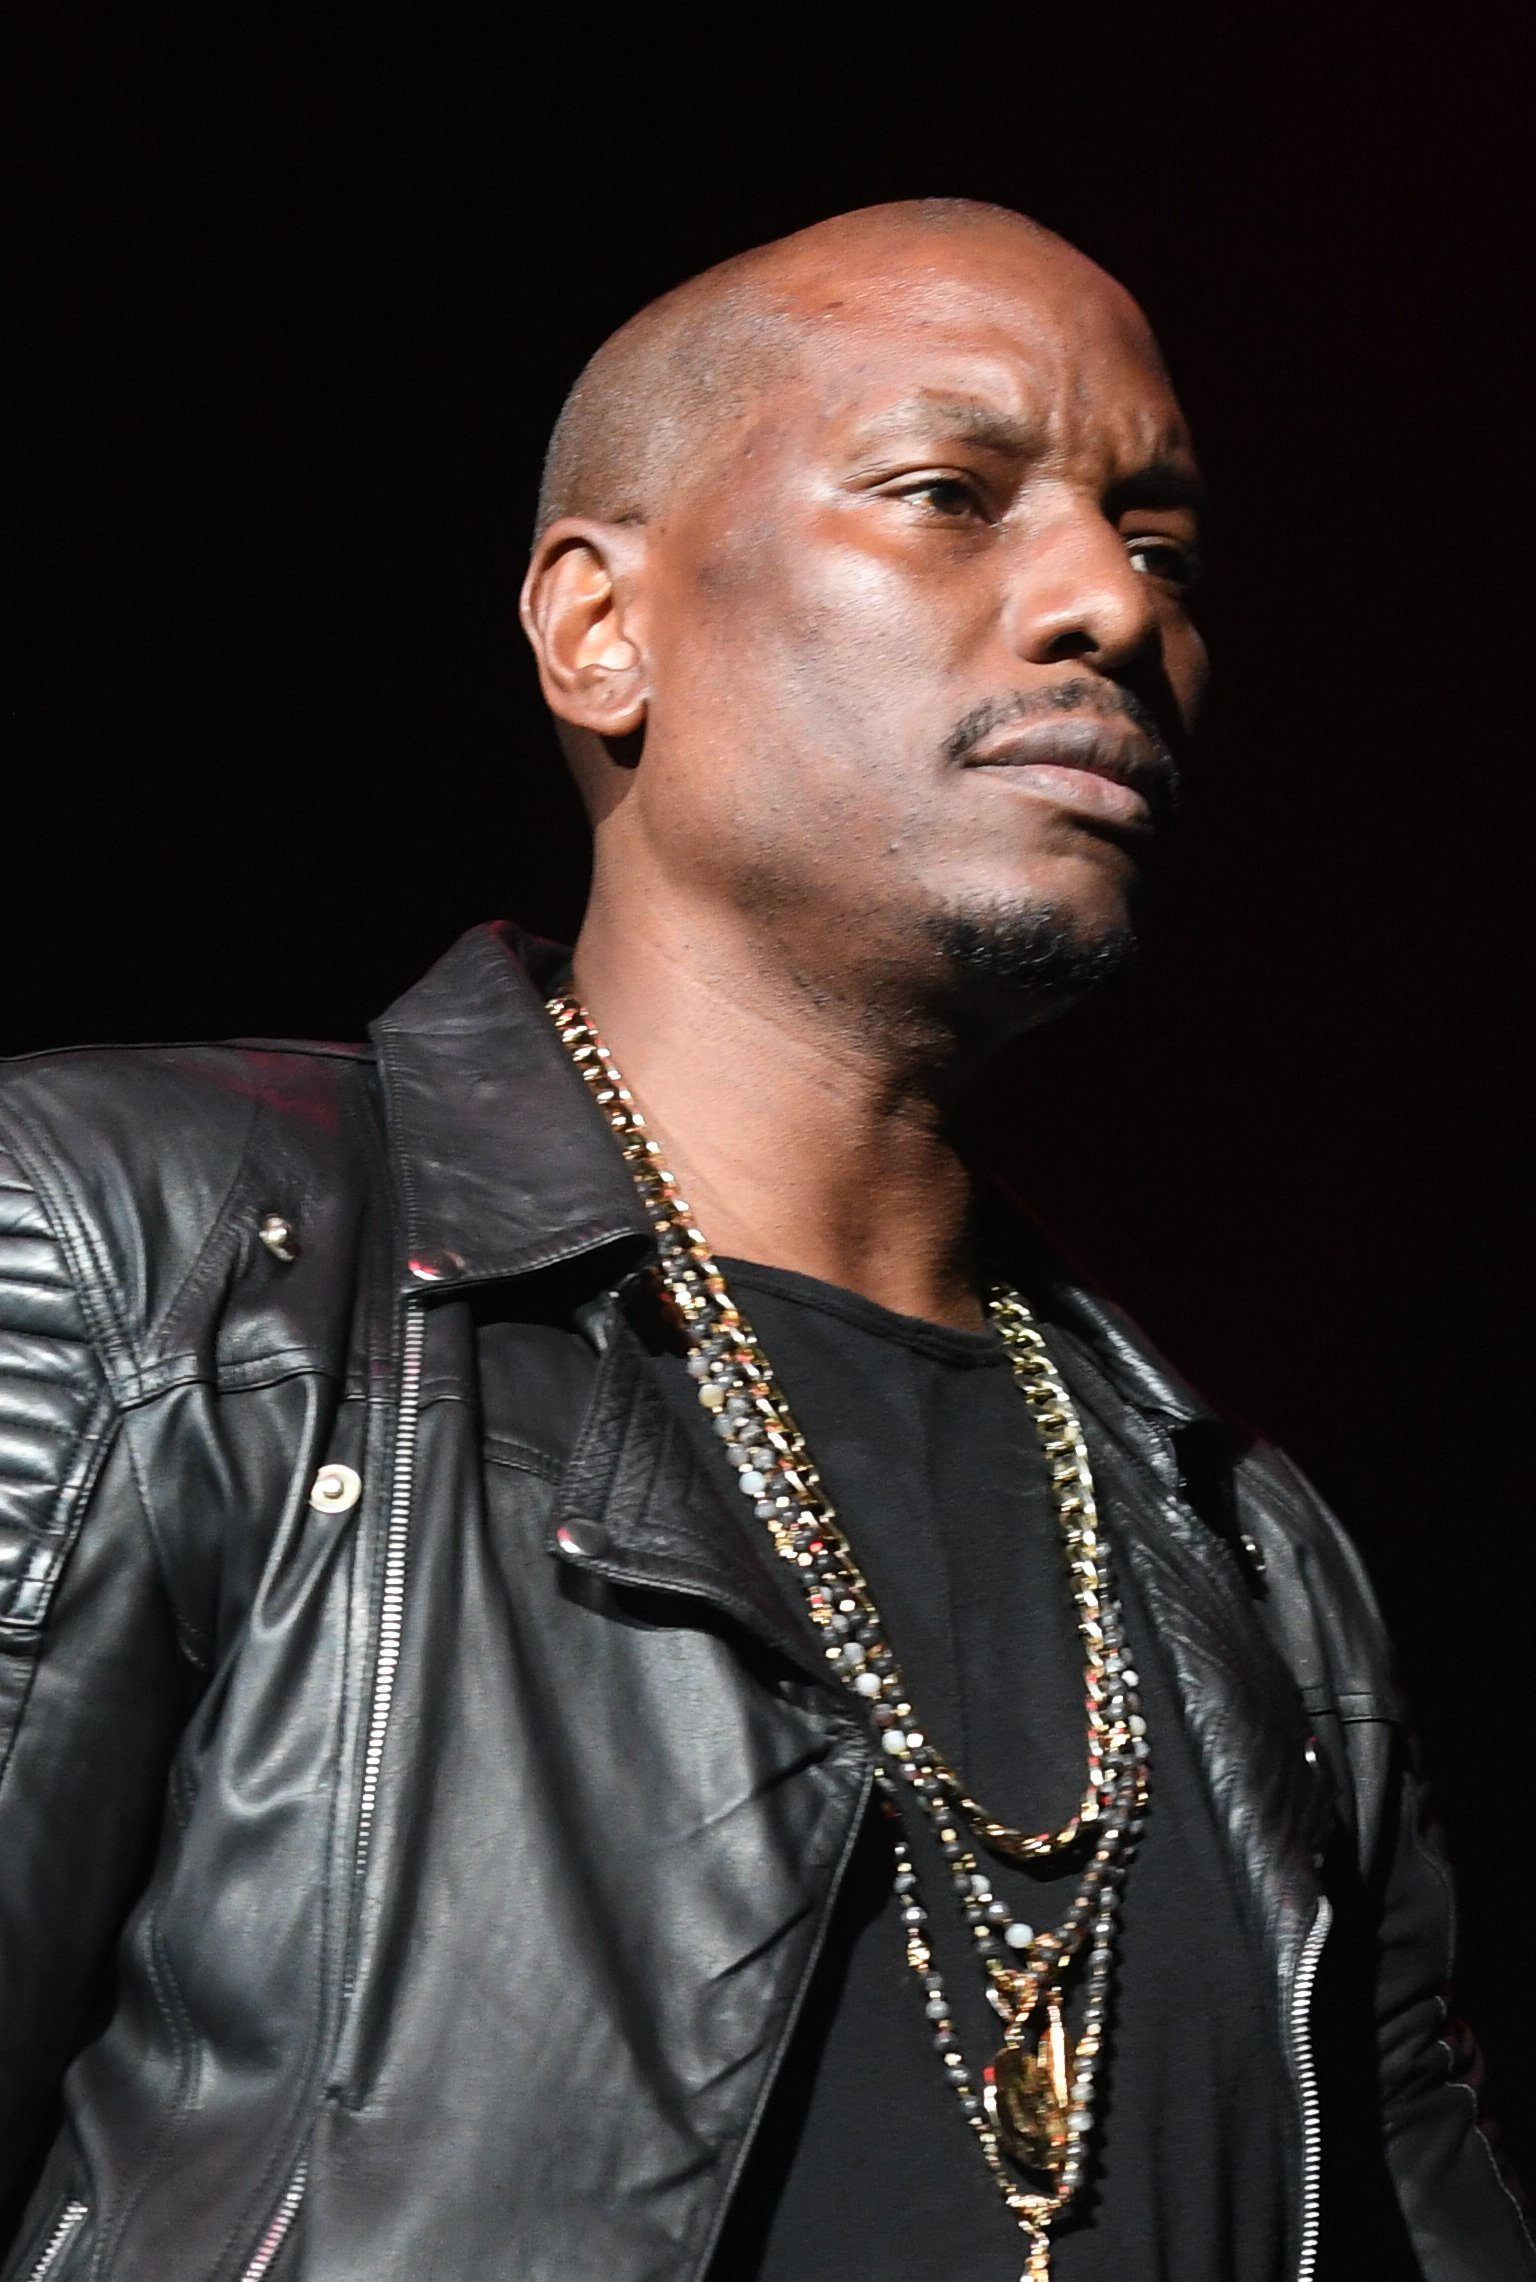 Tyrese Gibson during the R&B Super Jam in October 2017.